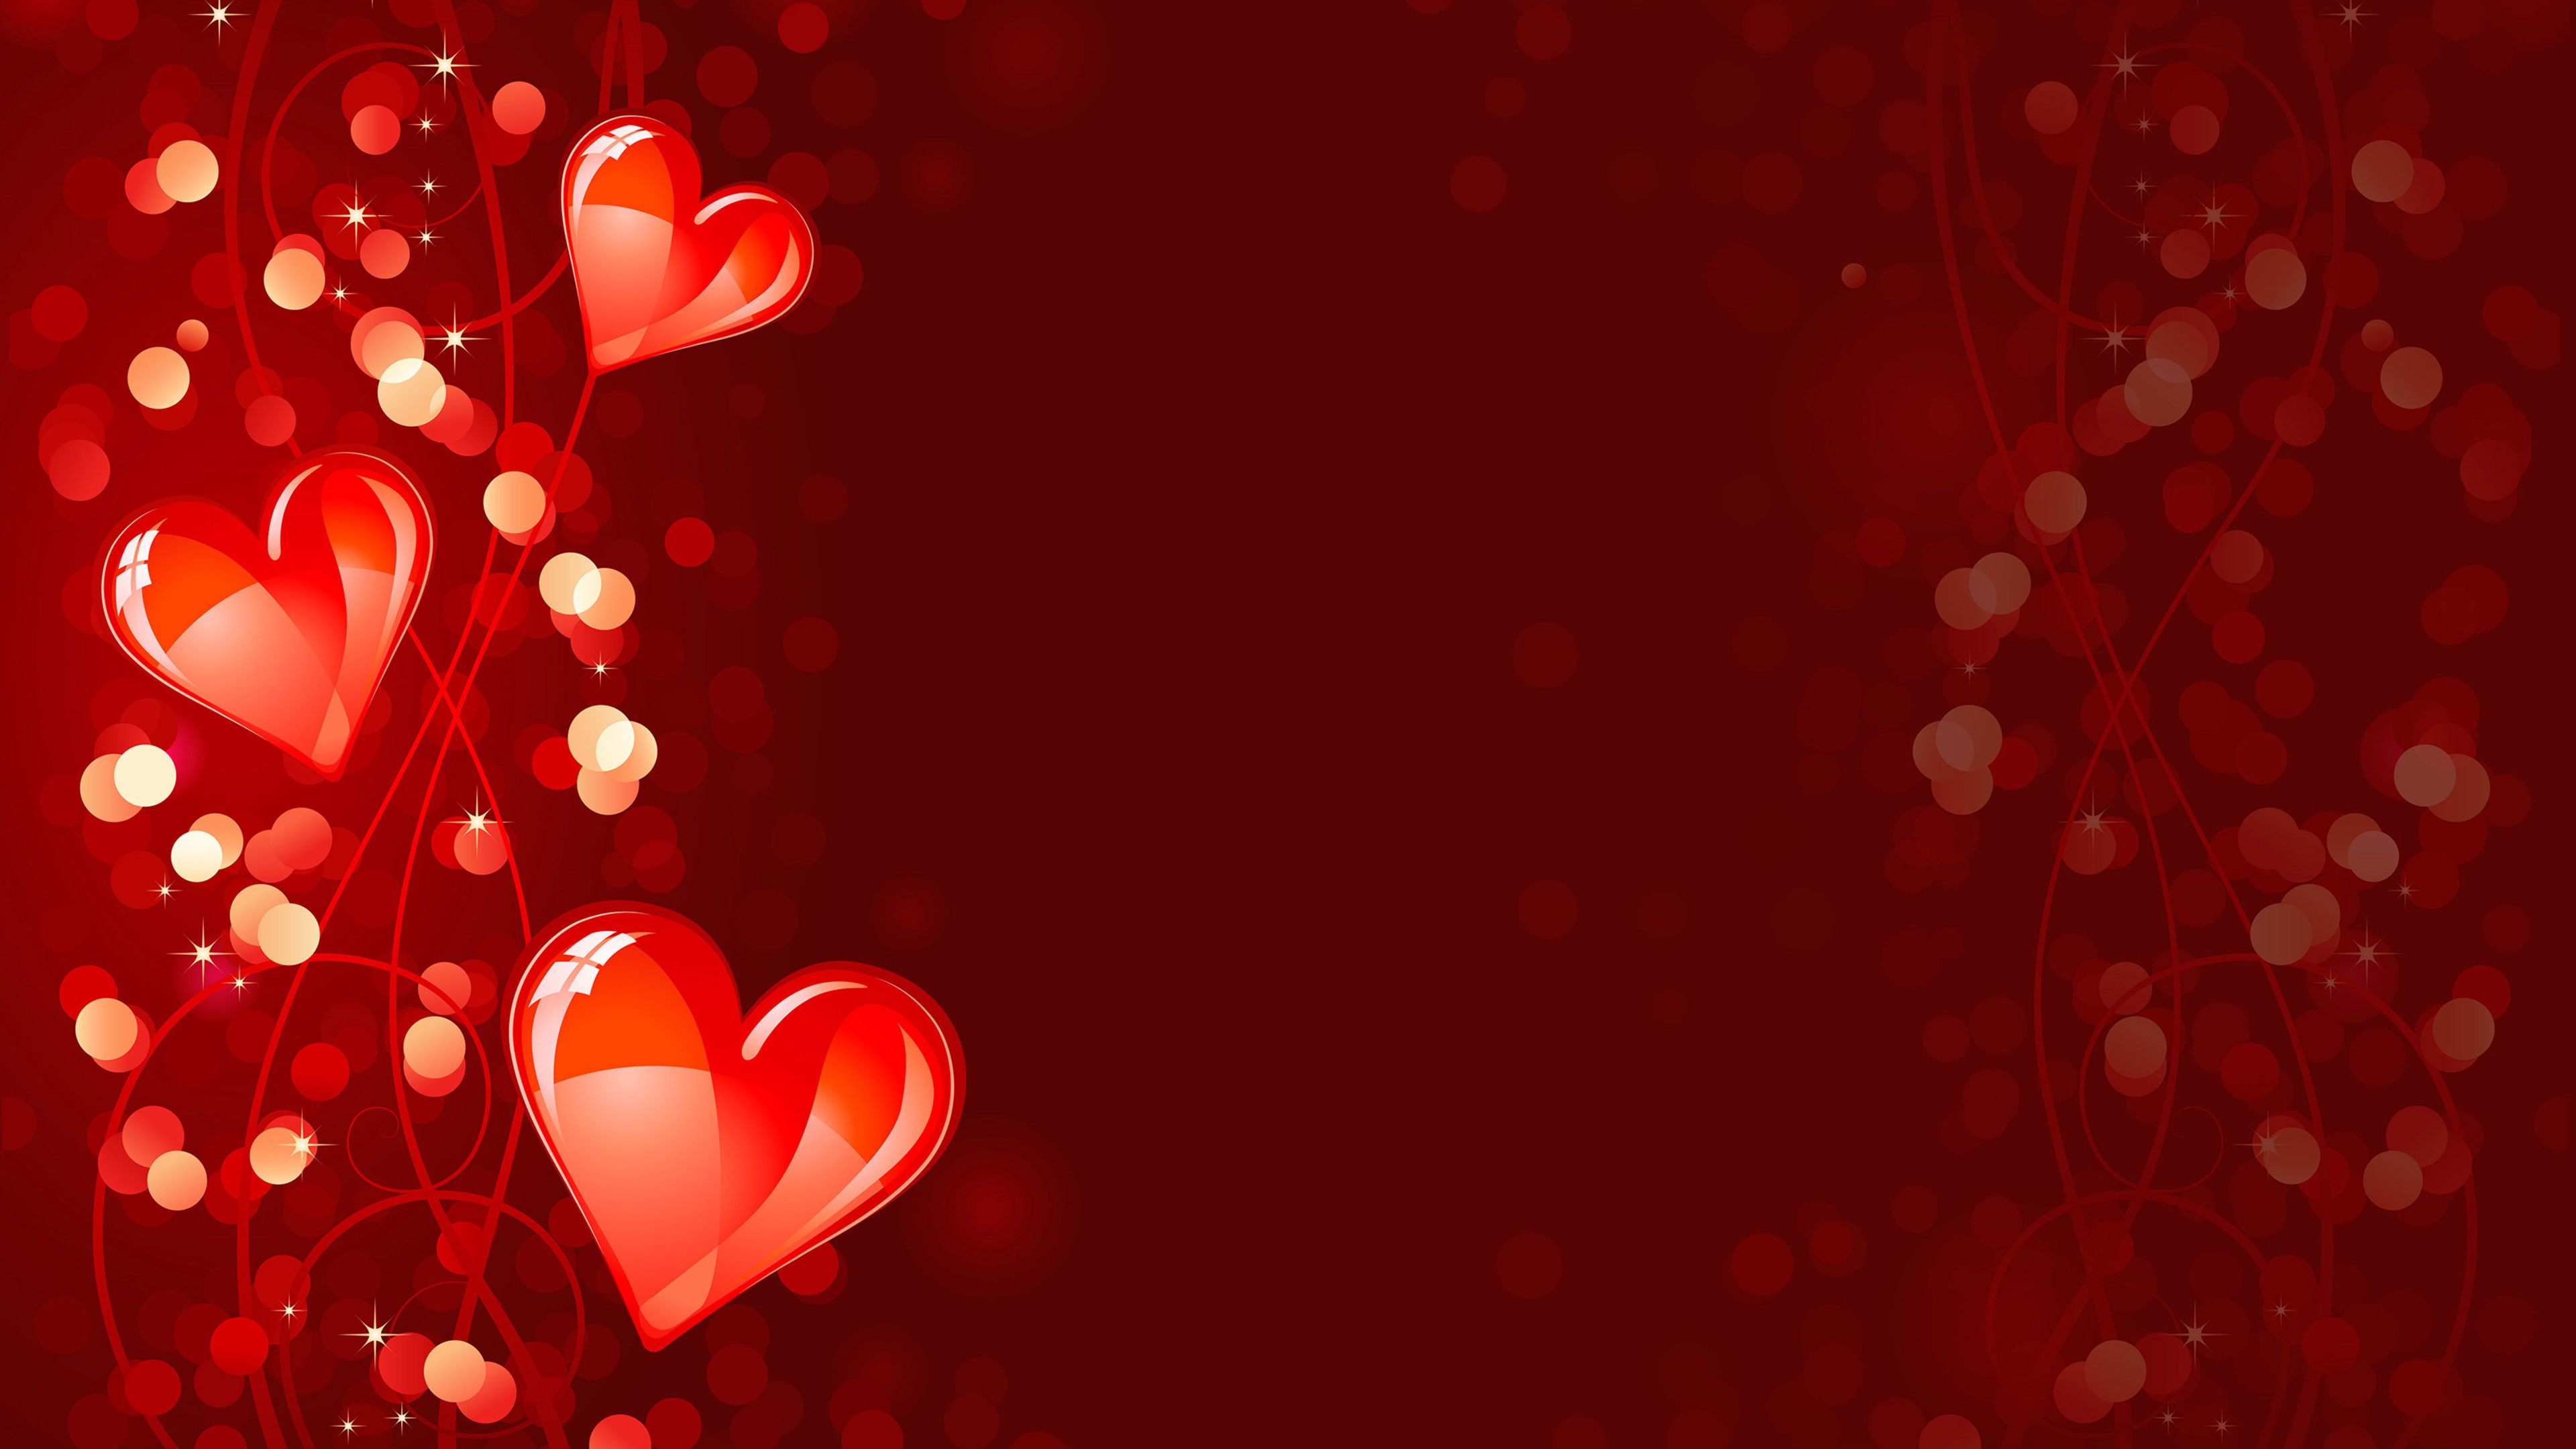 Love Wallpaper Hd Size : 4k Love Wallpapers High Quality Download Free